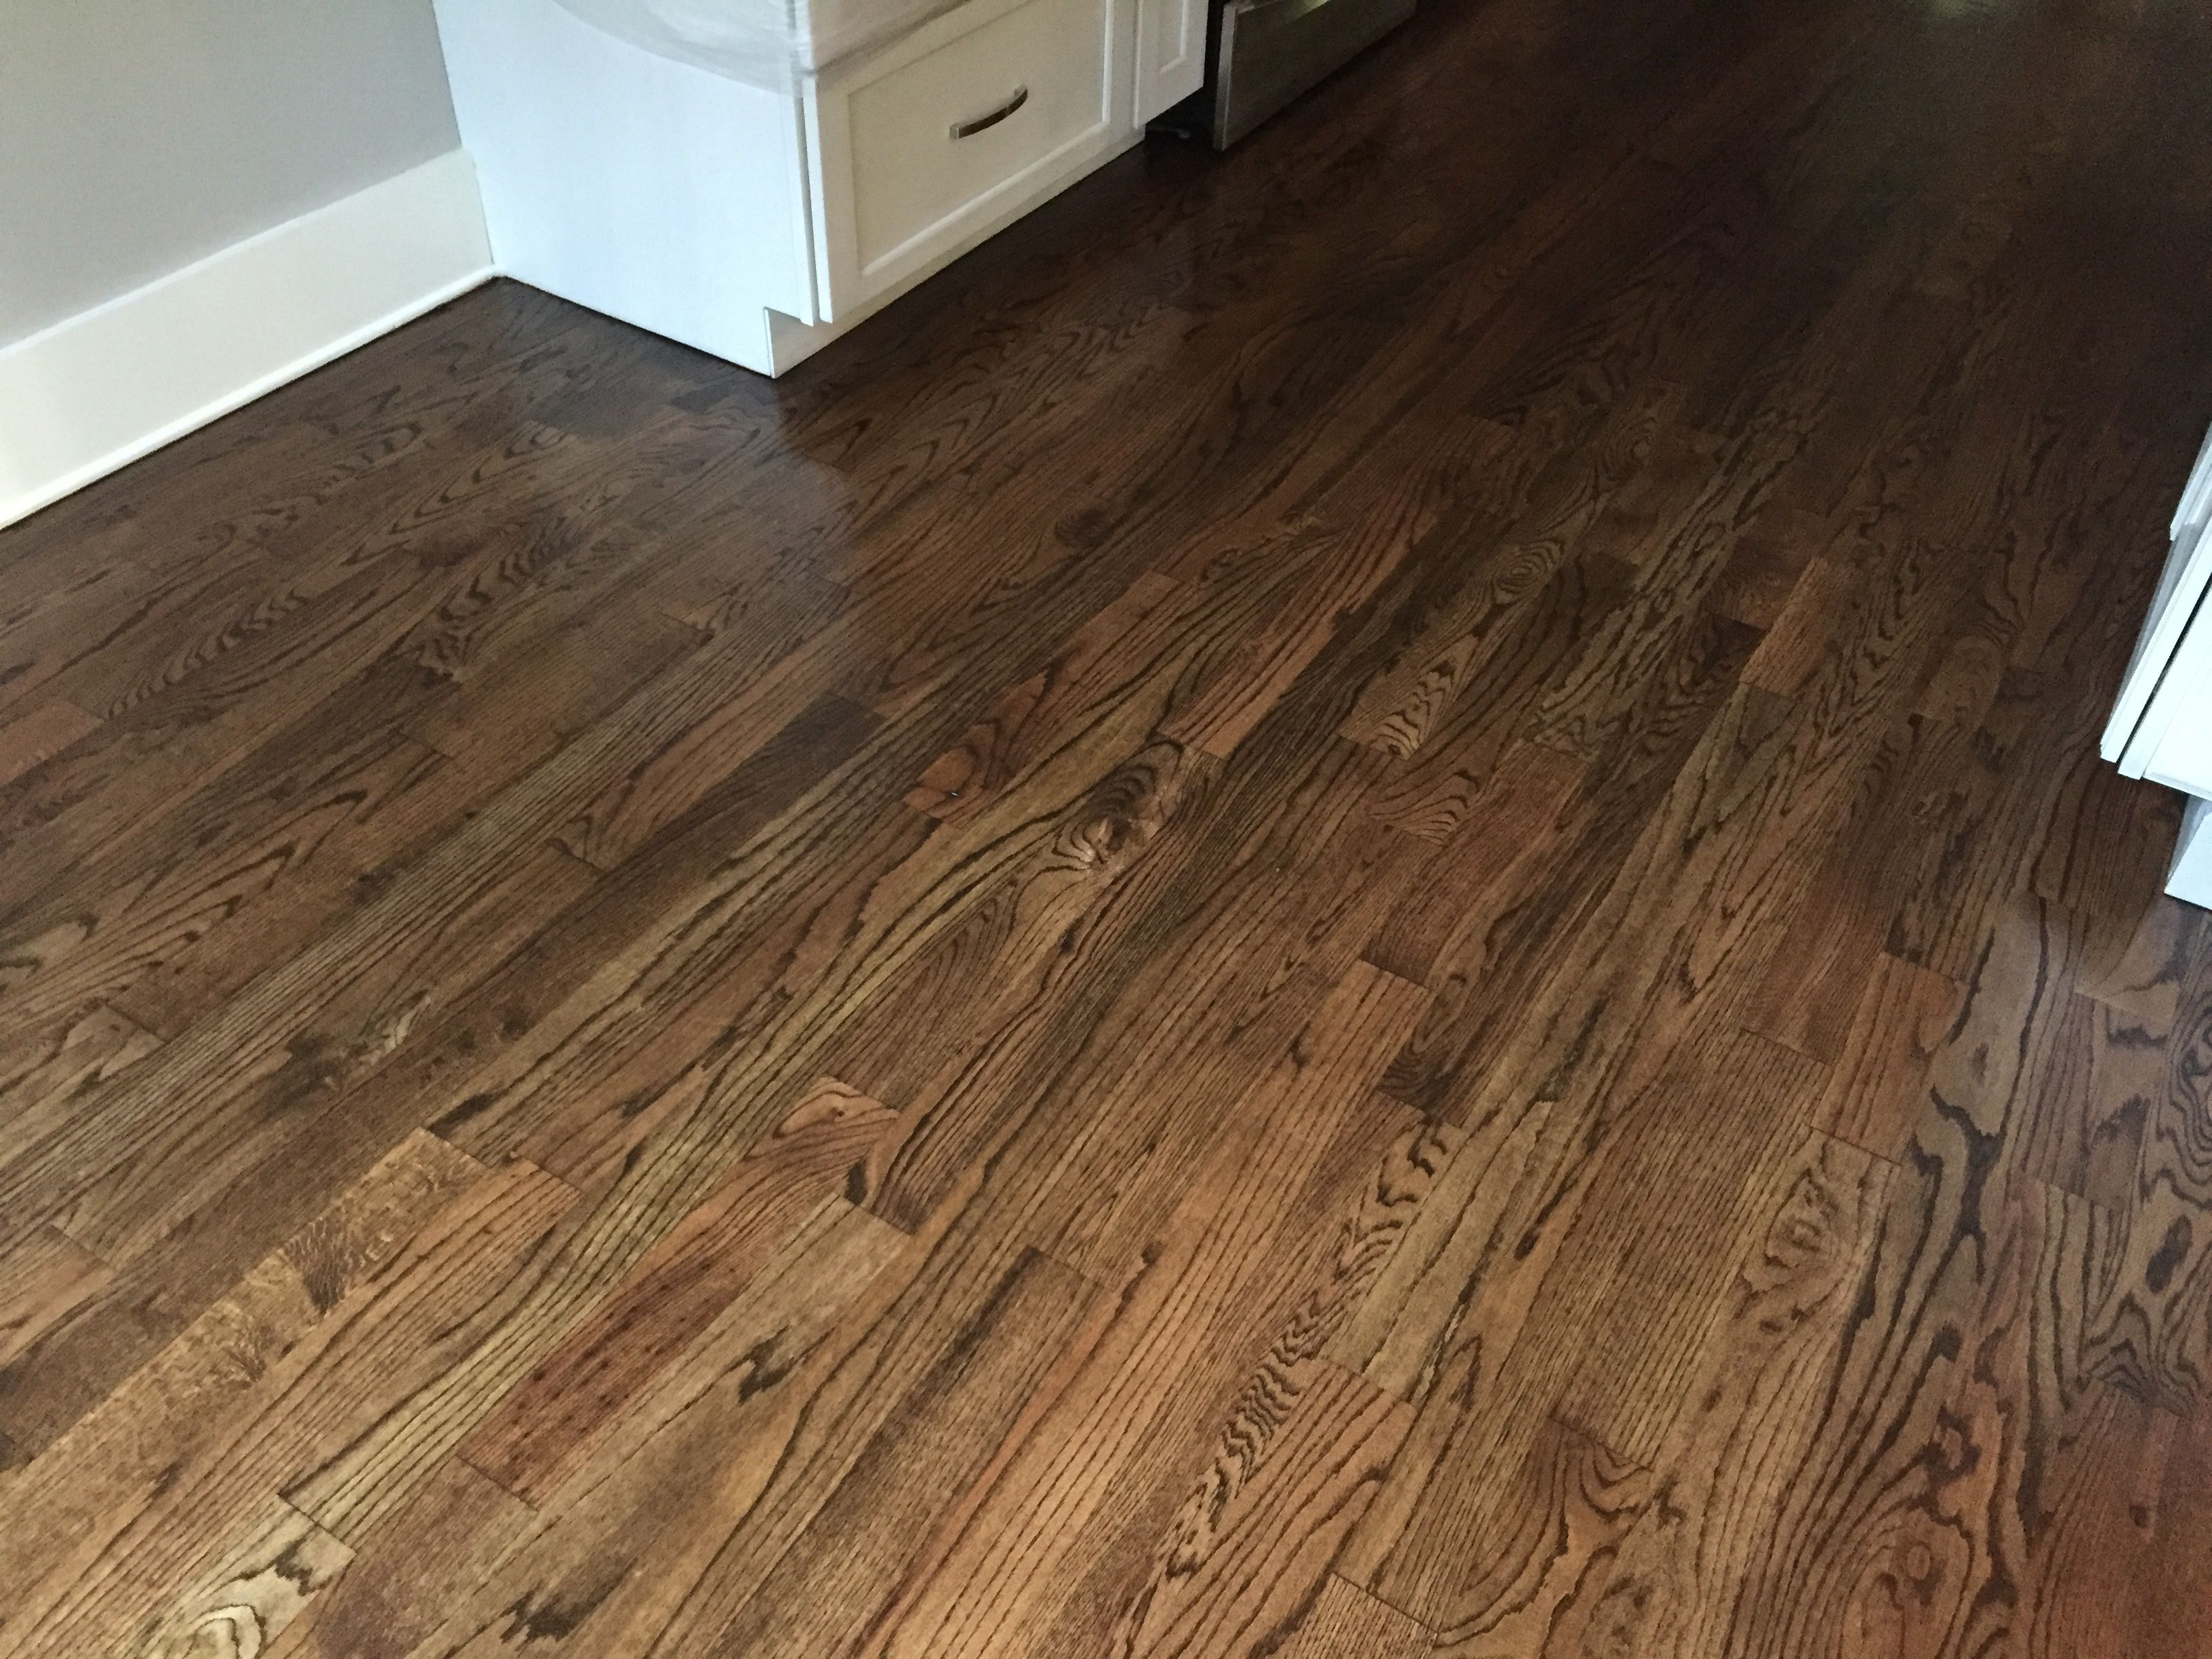 Newly sanded #2 Red Oak Hardwood Flooring. Minwax Espresso ...